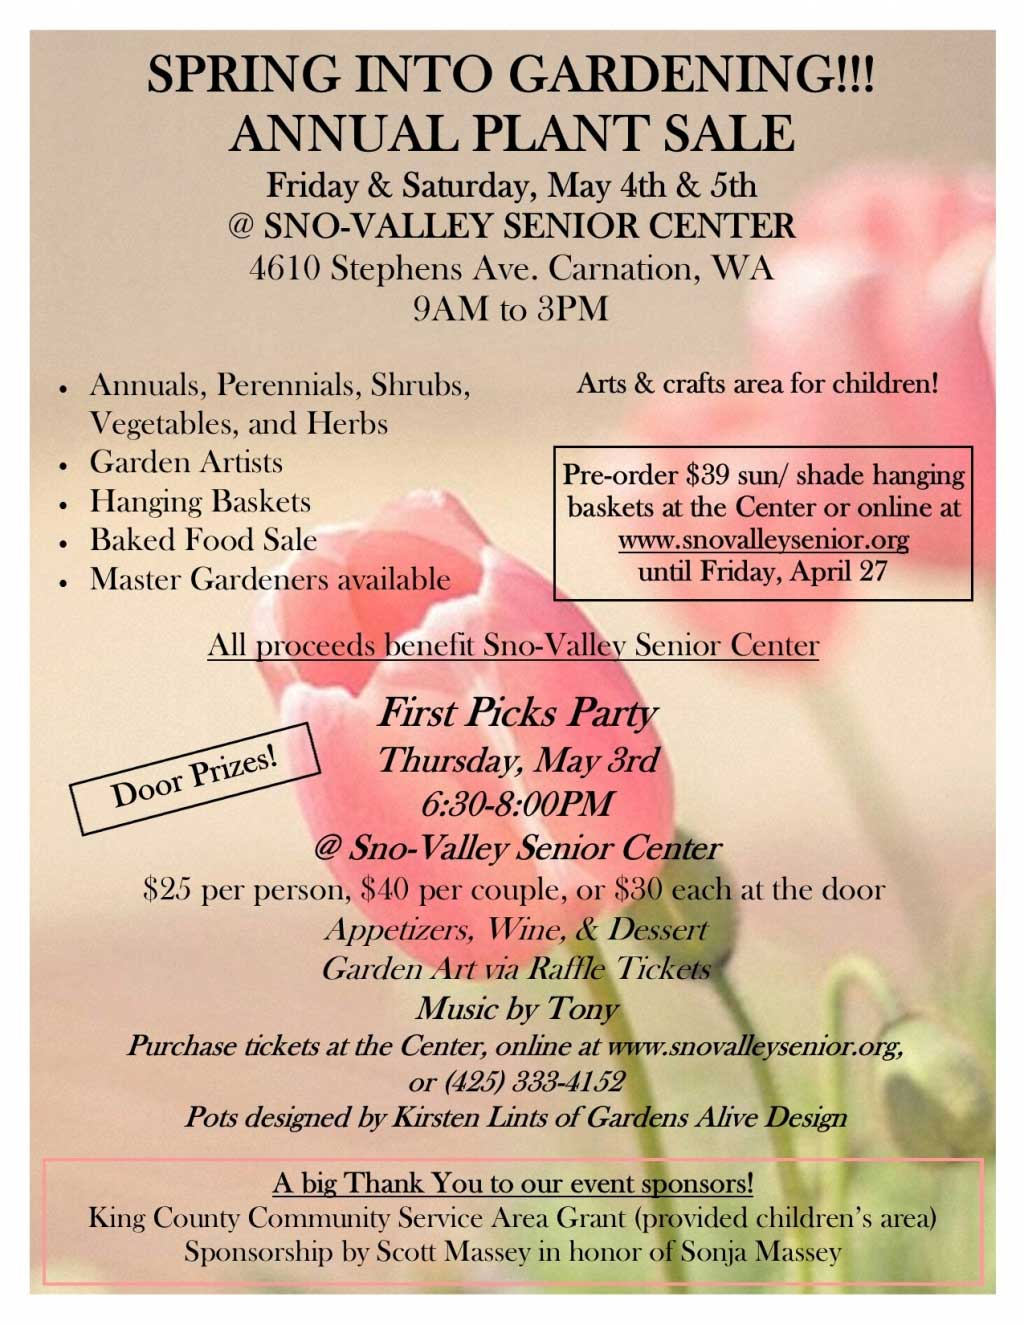 First Picks Party and Annual Plant Sale